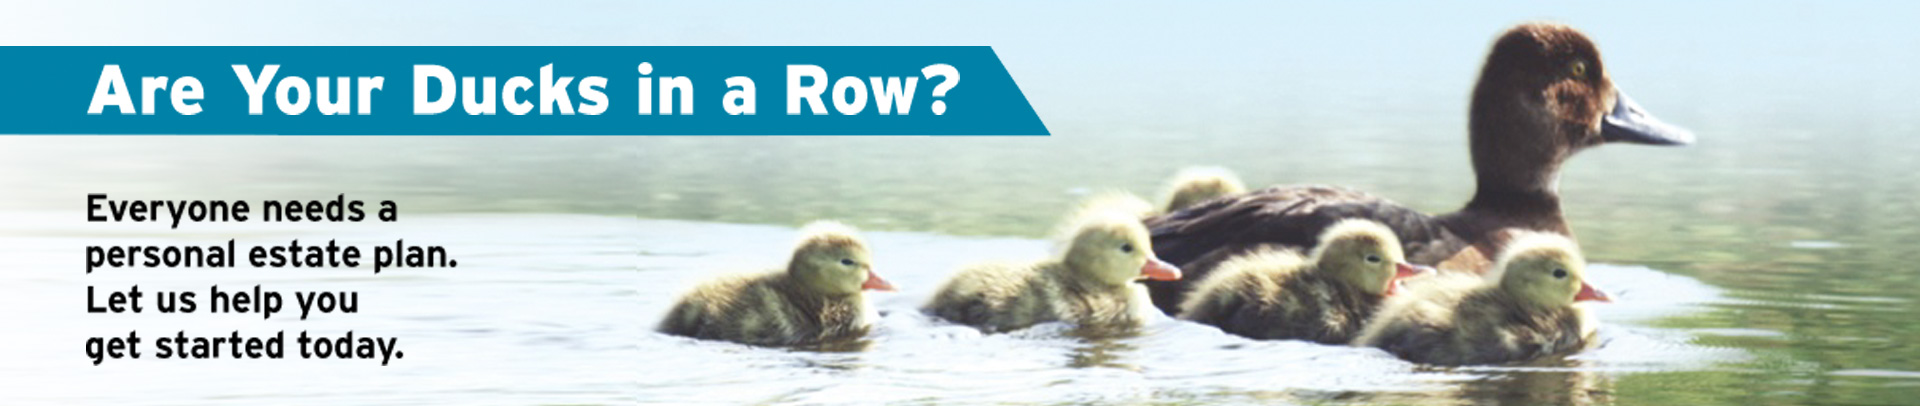 "Ducks on Water: ""Are Your Ducks in a Row? Everyone need a personal estate plan. Let us help you get started today."""